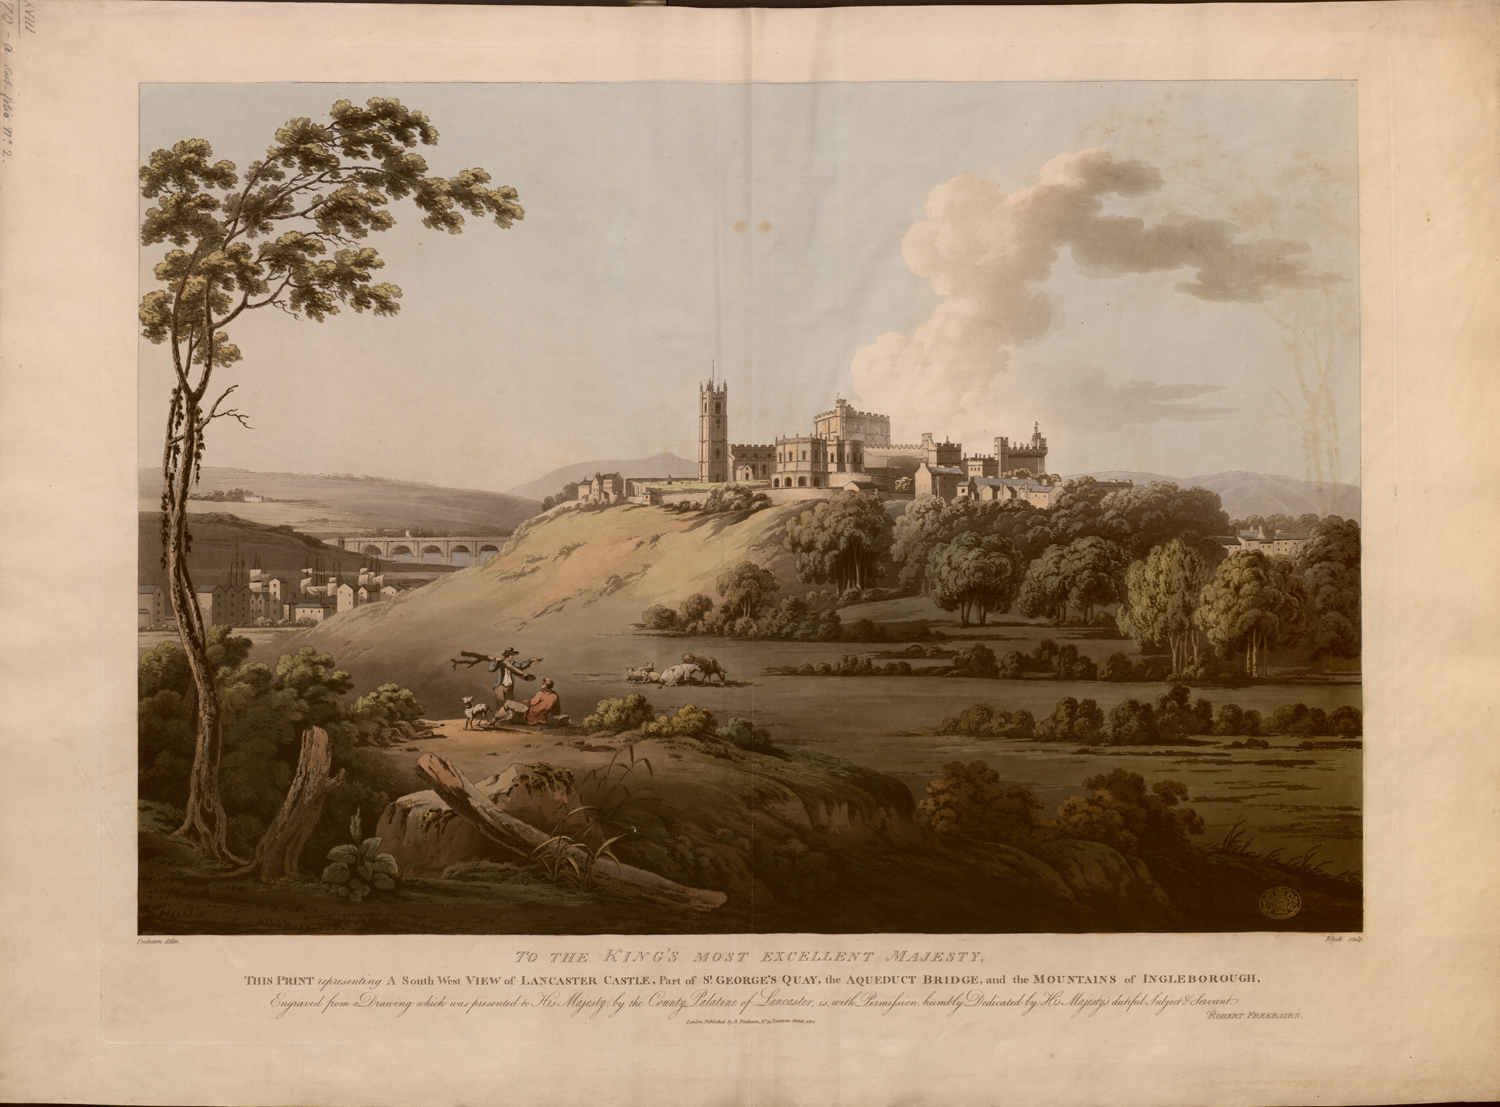 A South West view of Lancaster Castle after Robert Freebairn